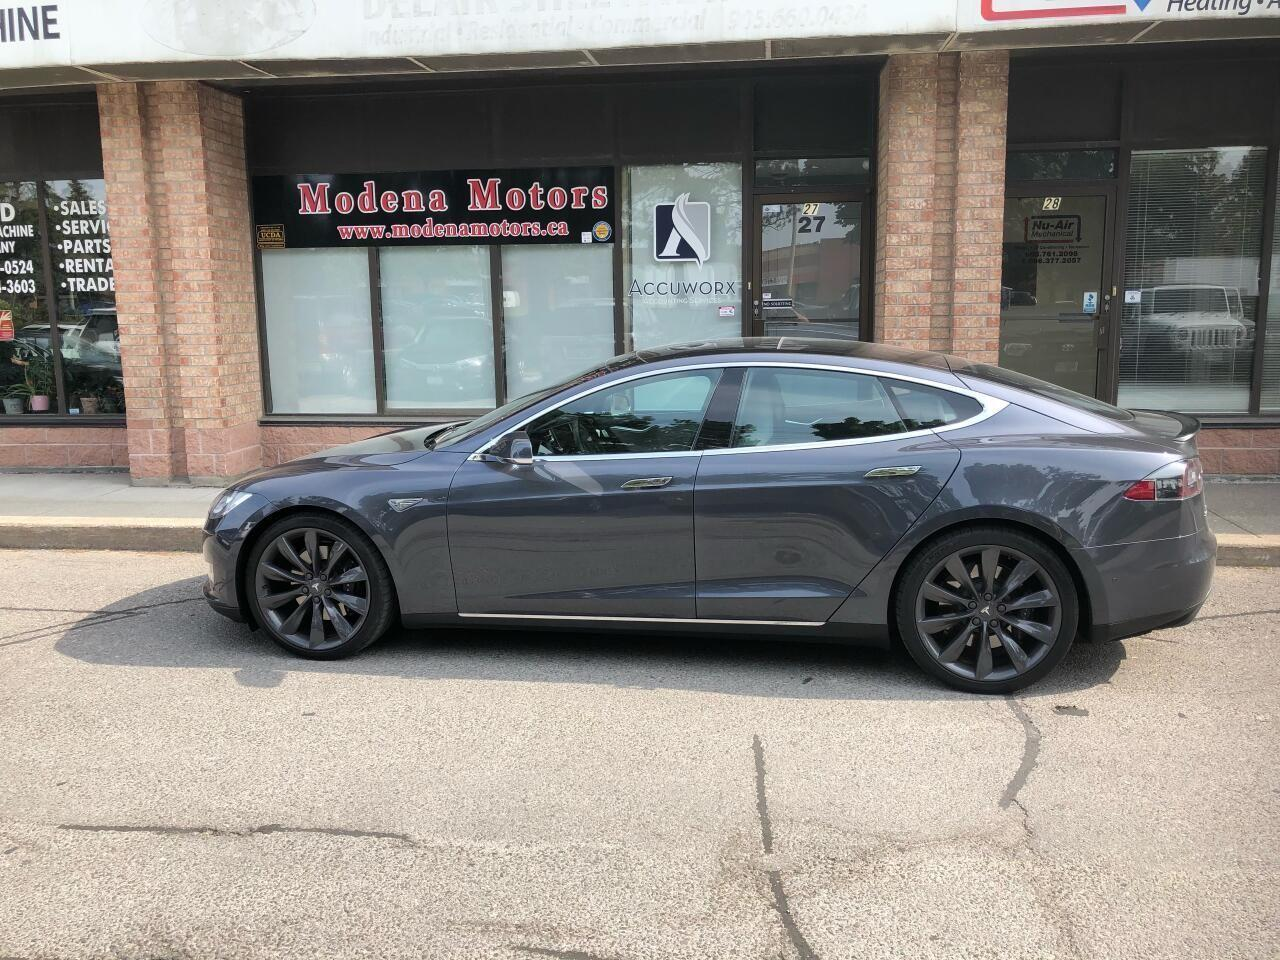 Photo of Gray 2016 Tesla Model S P90D HATCH SEDAN